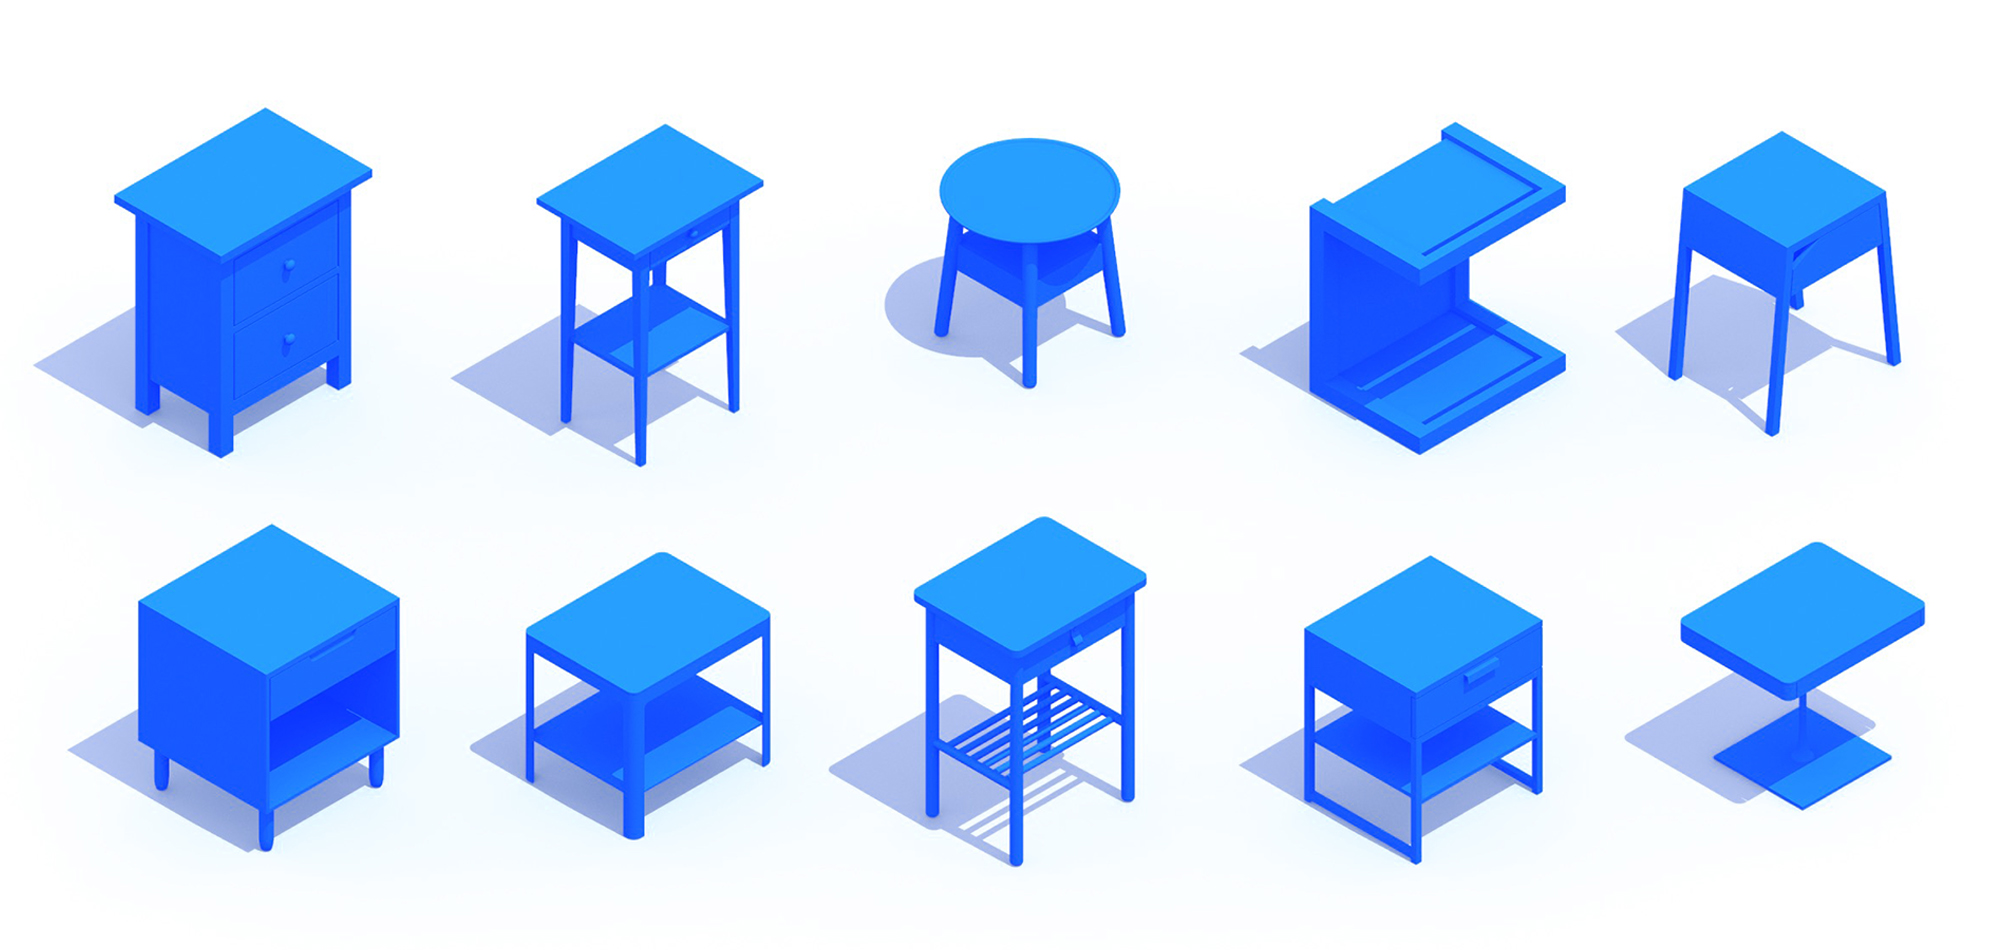 3D perspective of a collection of Nightstands (Bedside Tables) showing many different sizes, styles, and designs